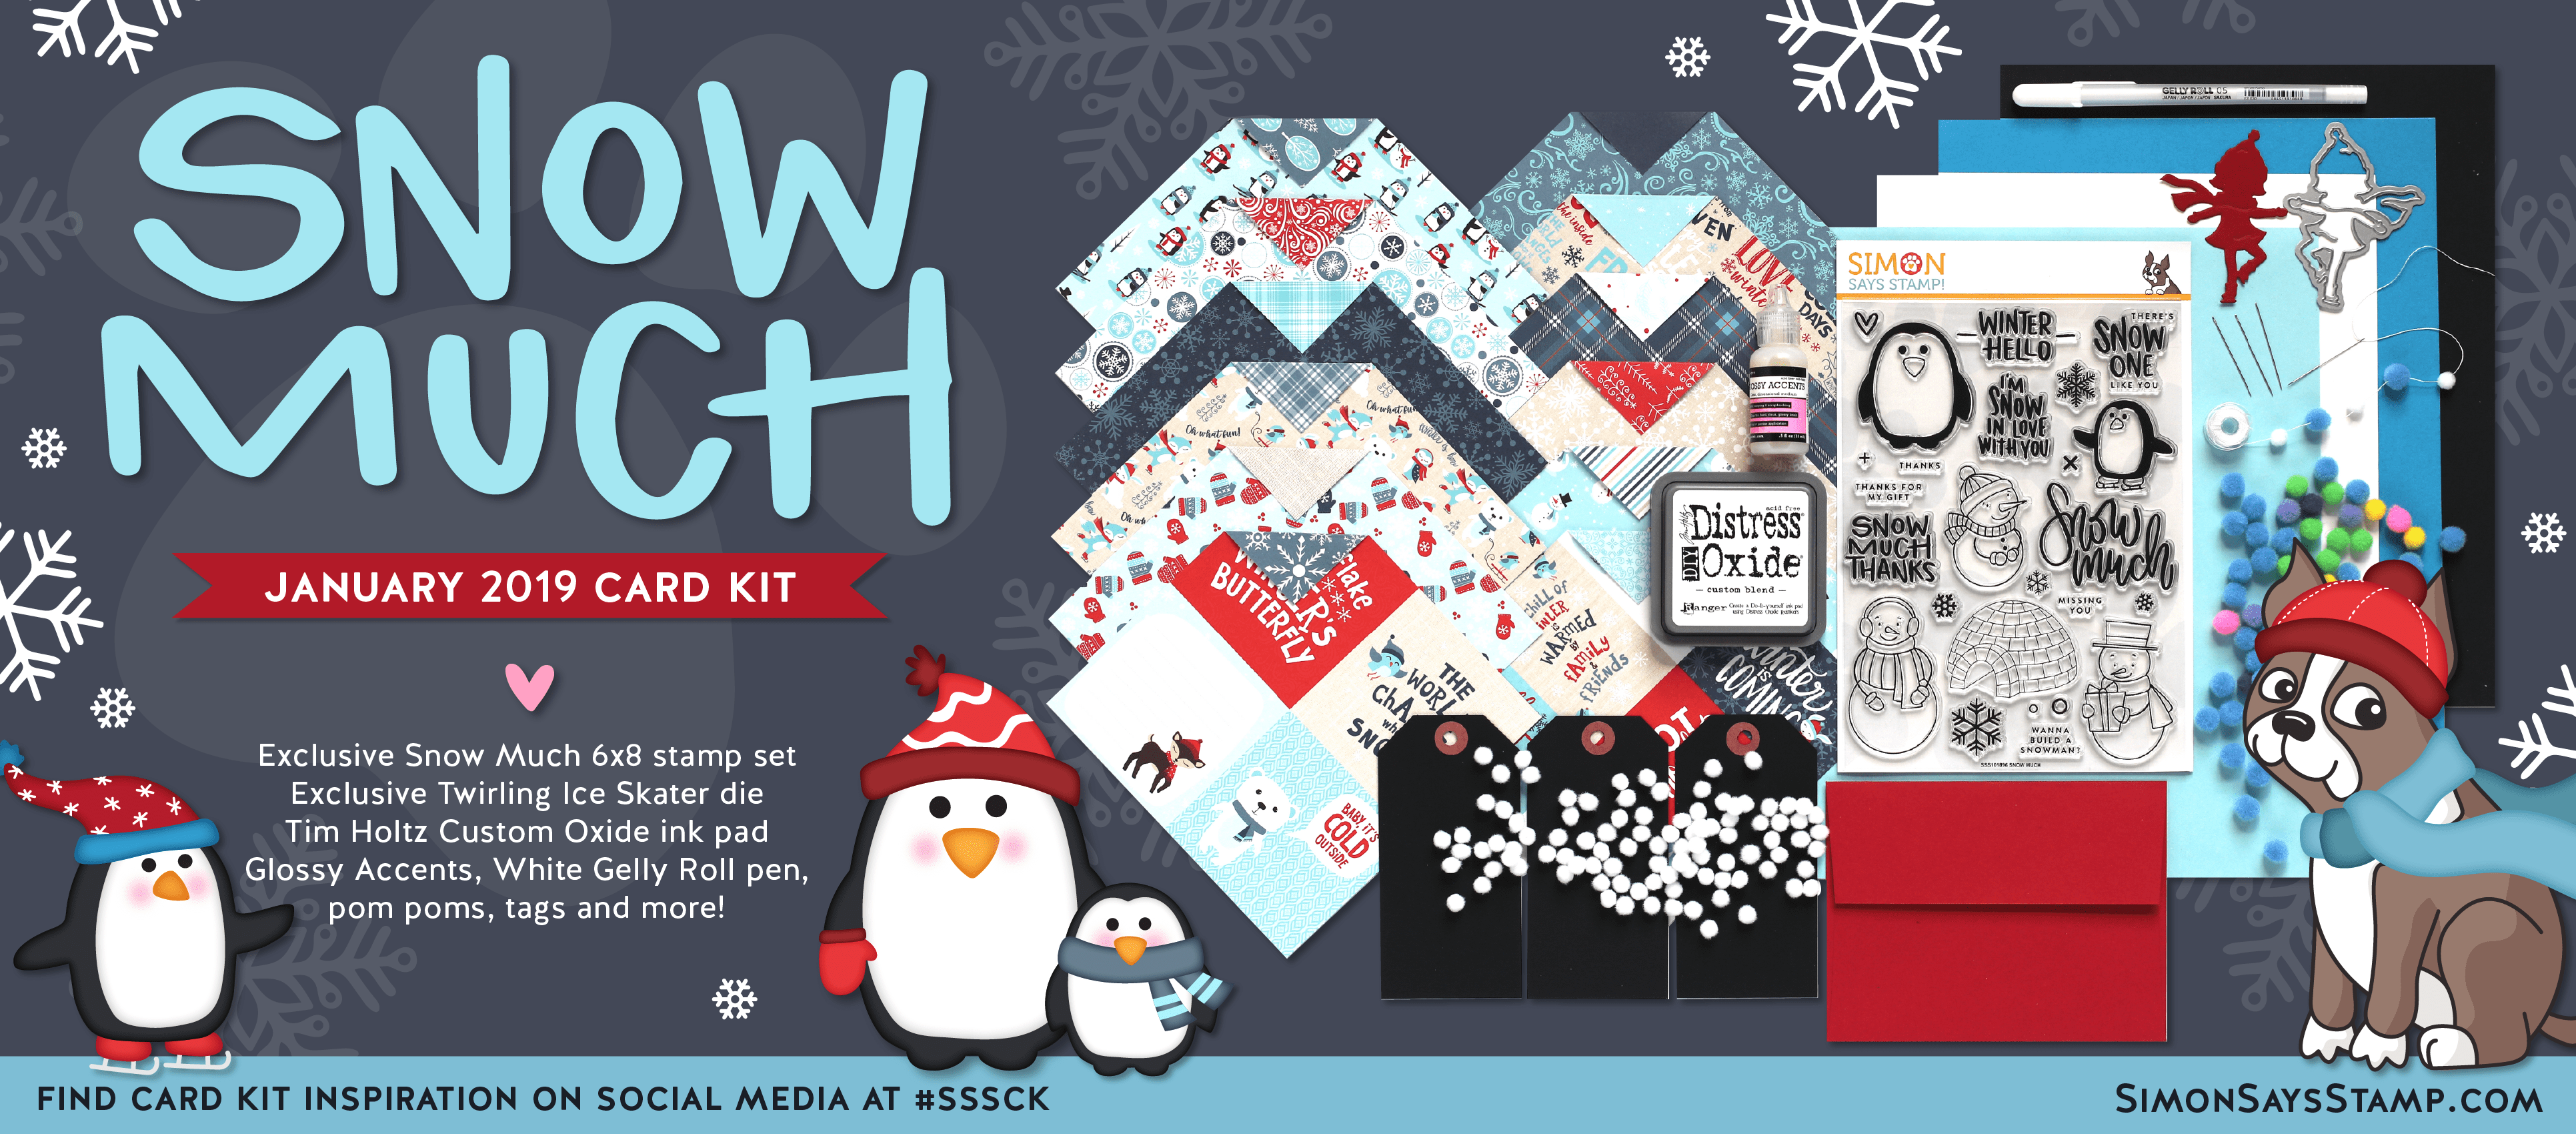 January 2019 Card Kit Snow Much